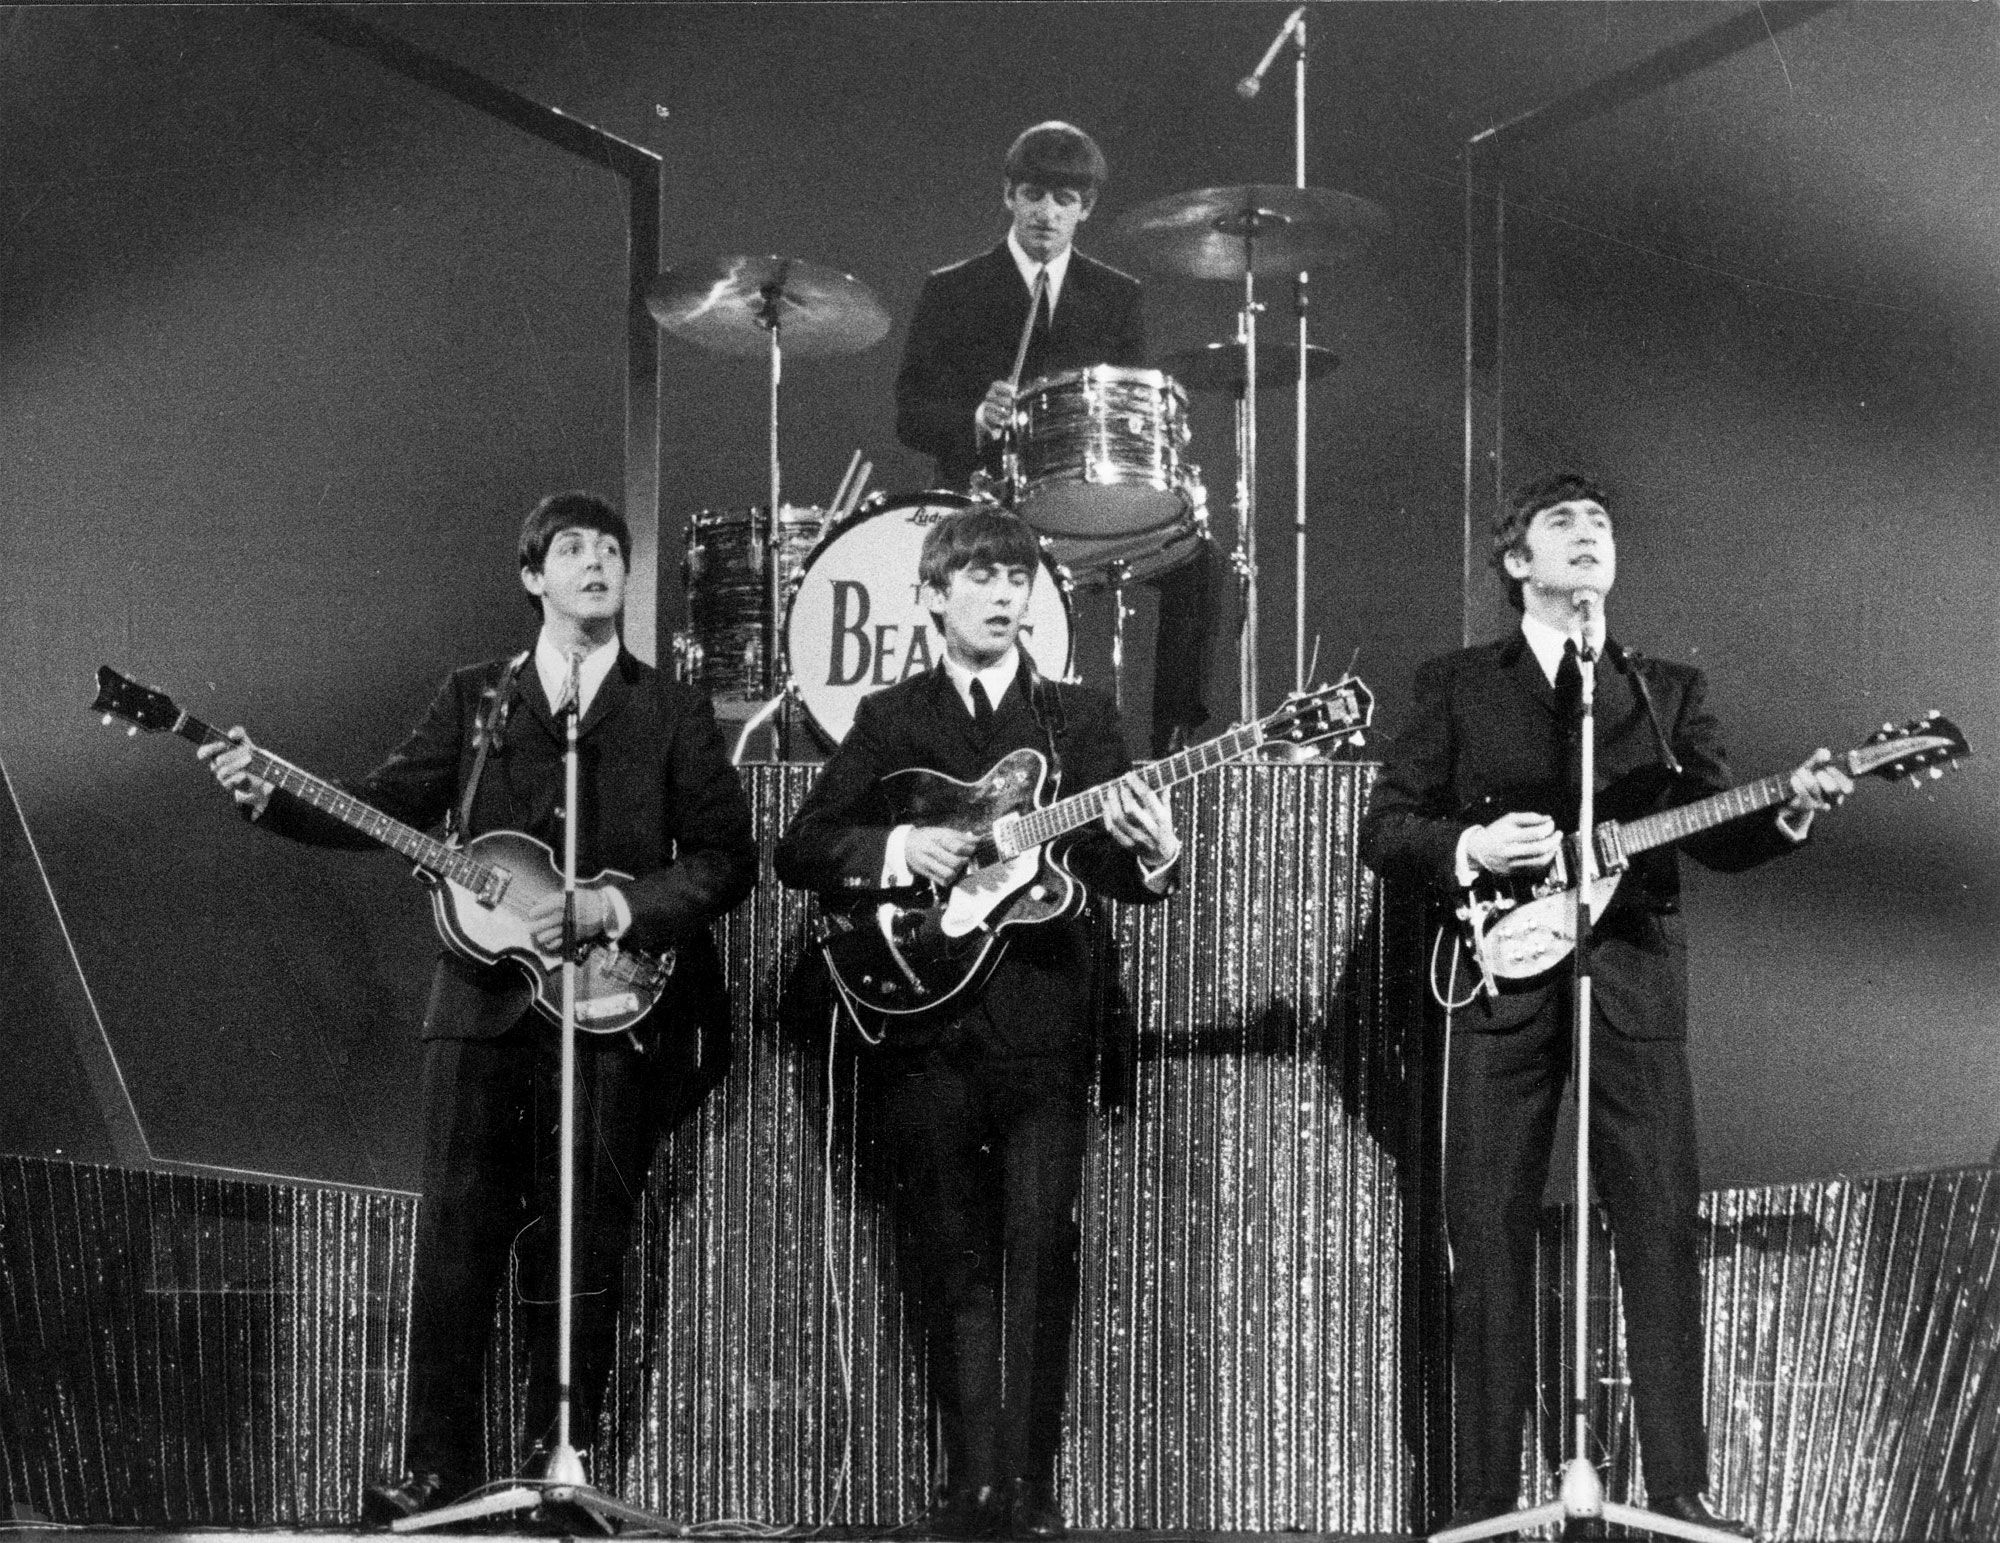 The Beatles at the London Palladium, October 13 1963